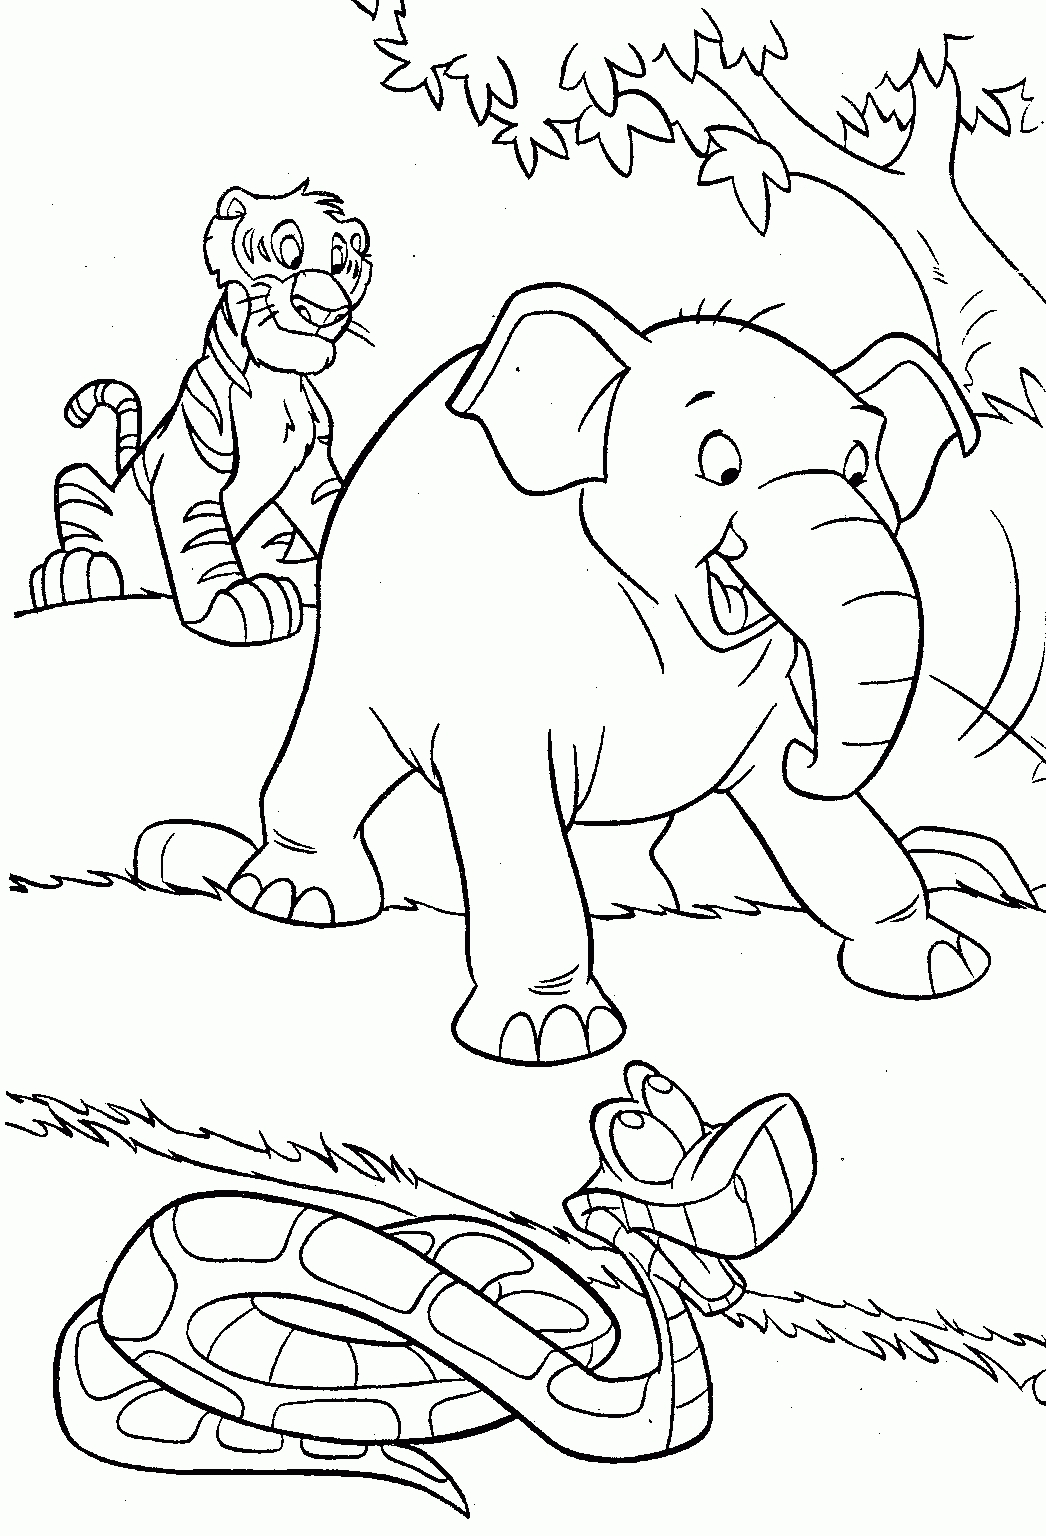 28 Printable Easter Coloring Pages Pictures FREE COLORING PAGES